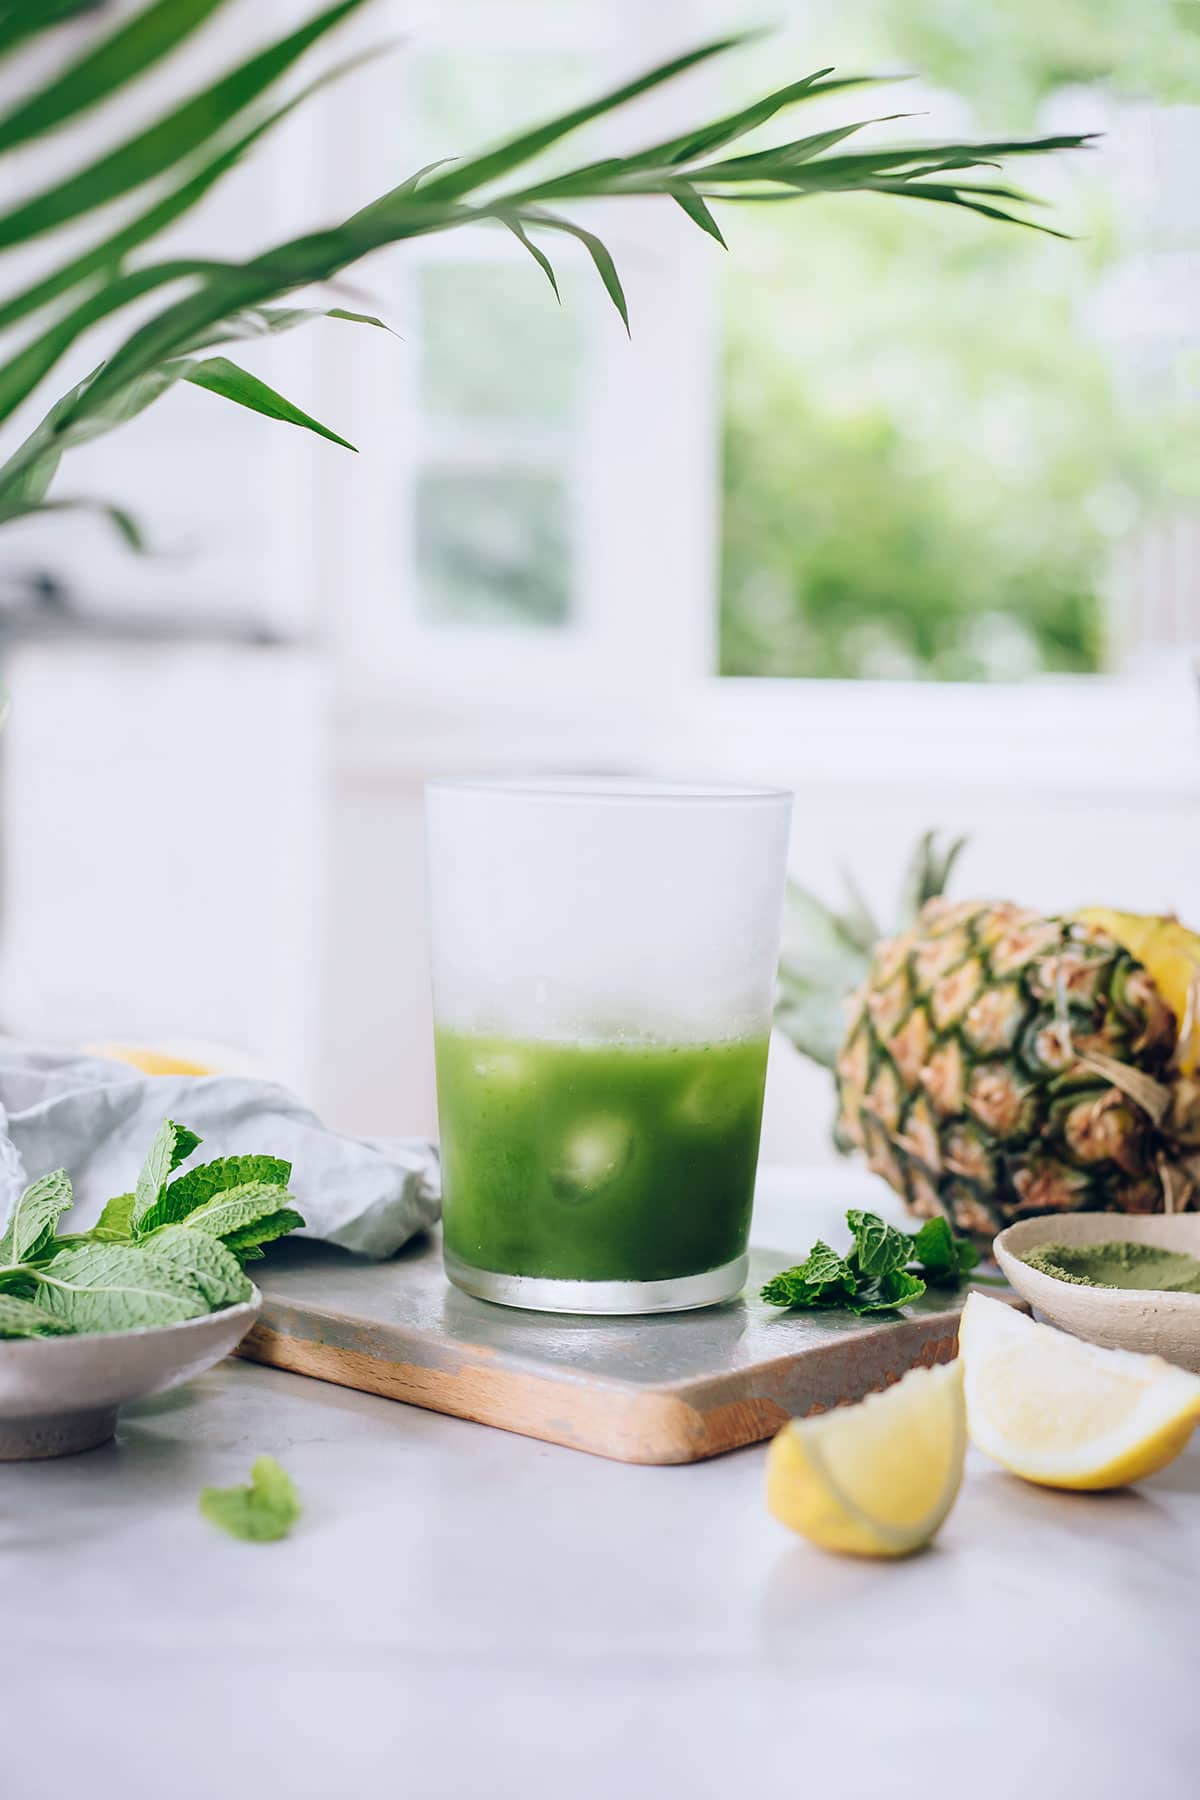 Tropical Detox Tea with Matcha, Mint and Pineapple #detoxtea #detox #summer #raw #matcha #hormonebalance | TheAwesomeGreen.com